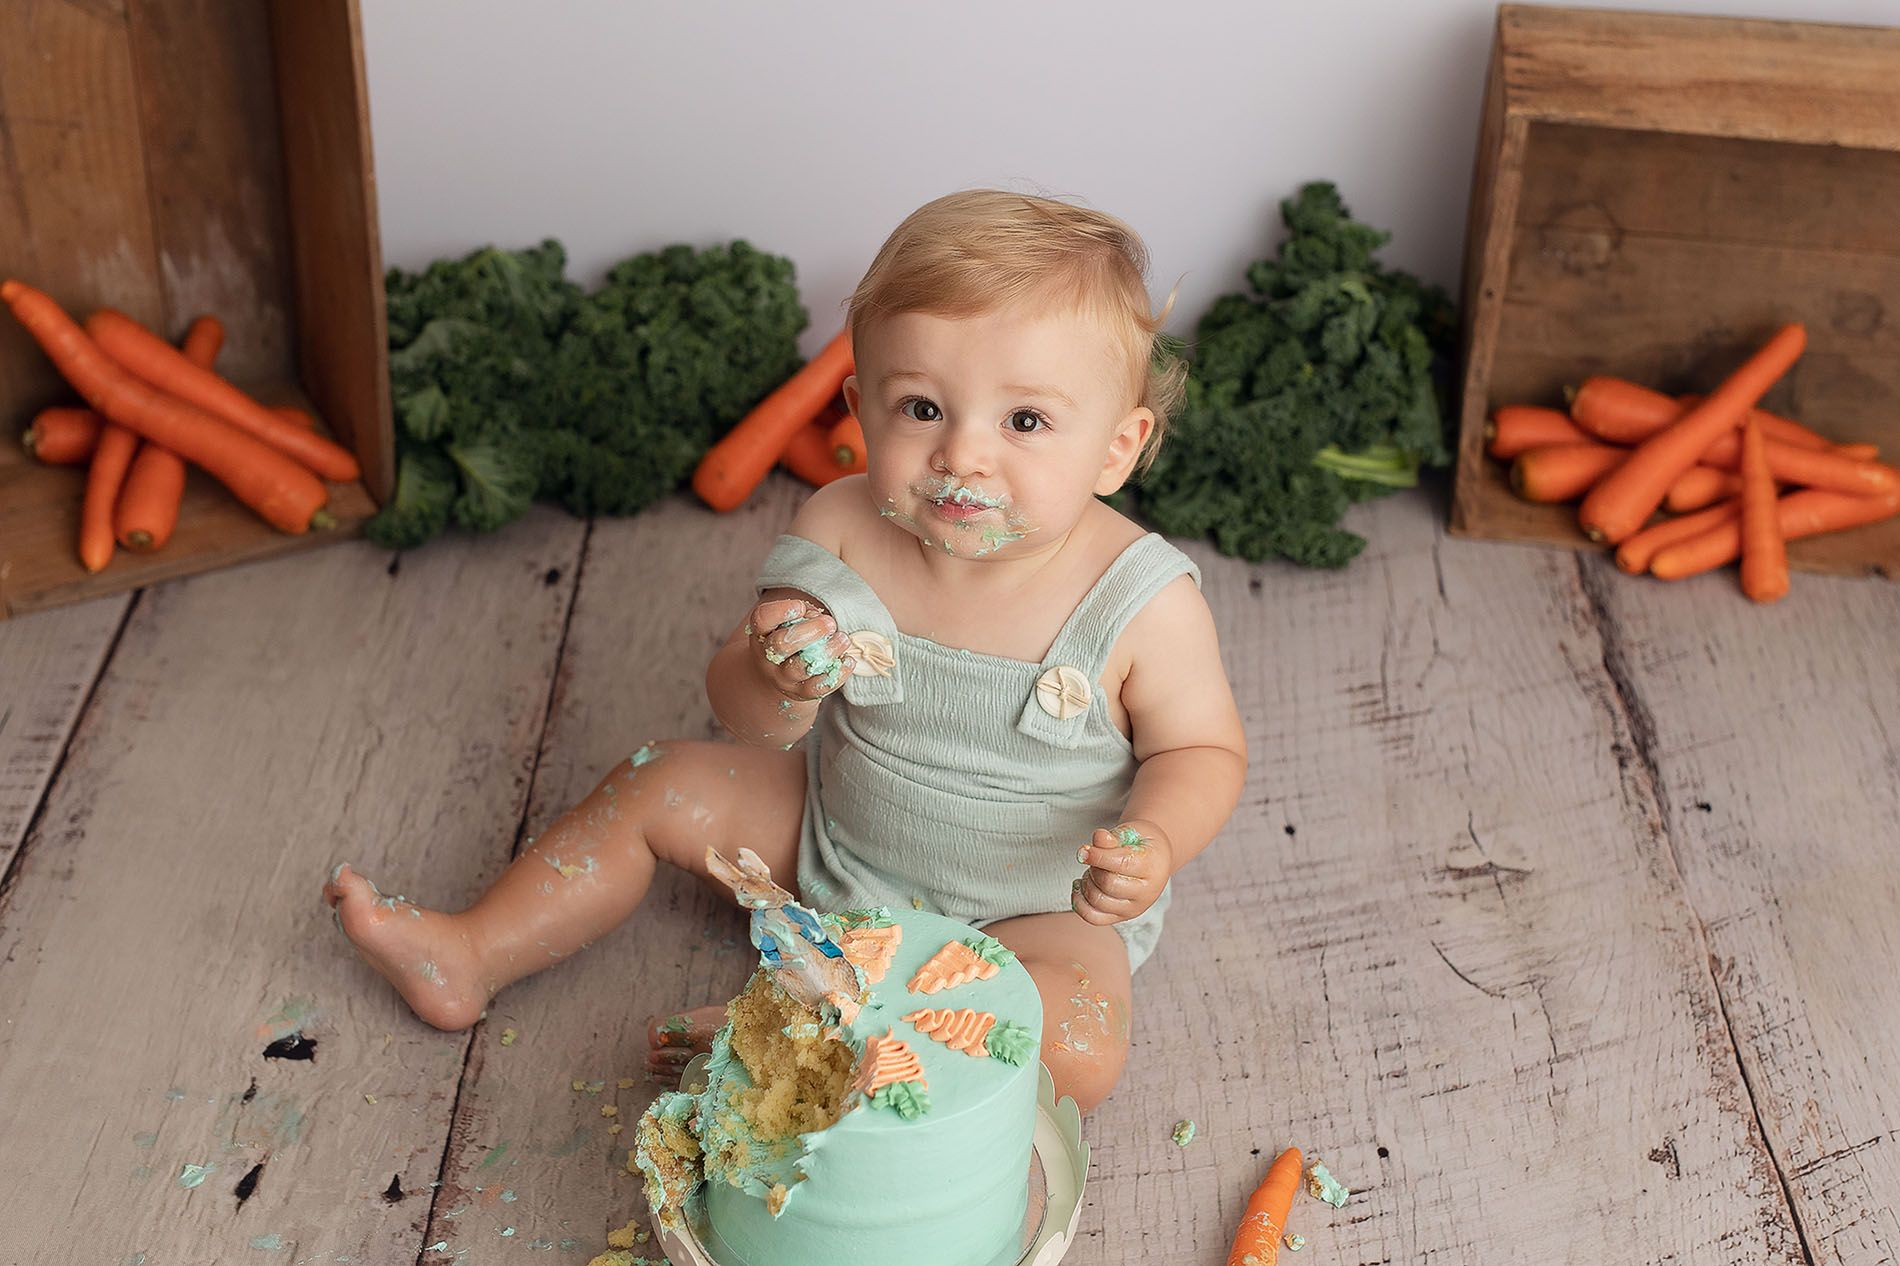 Little Brown Rabbit Photography - Baby photographer in Perth - boy doing cake smash